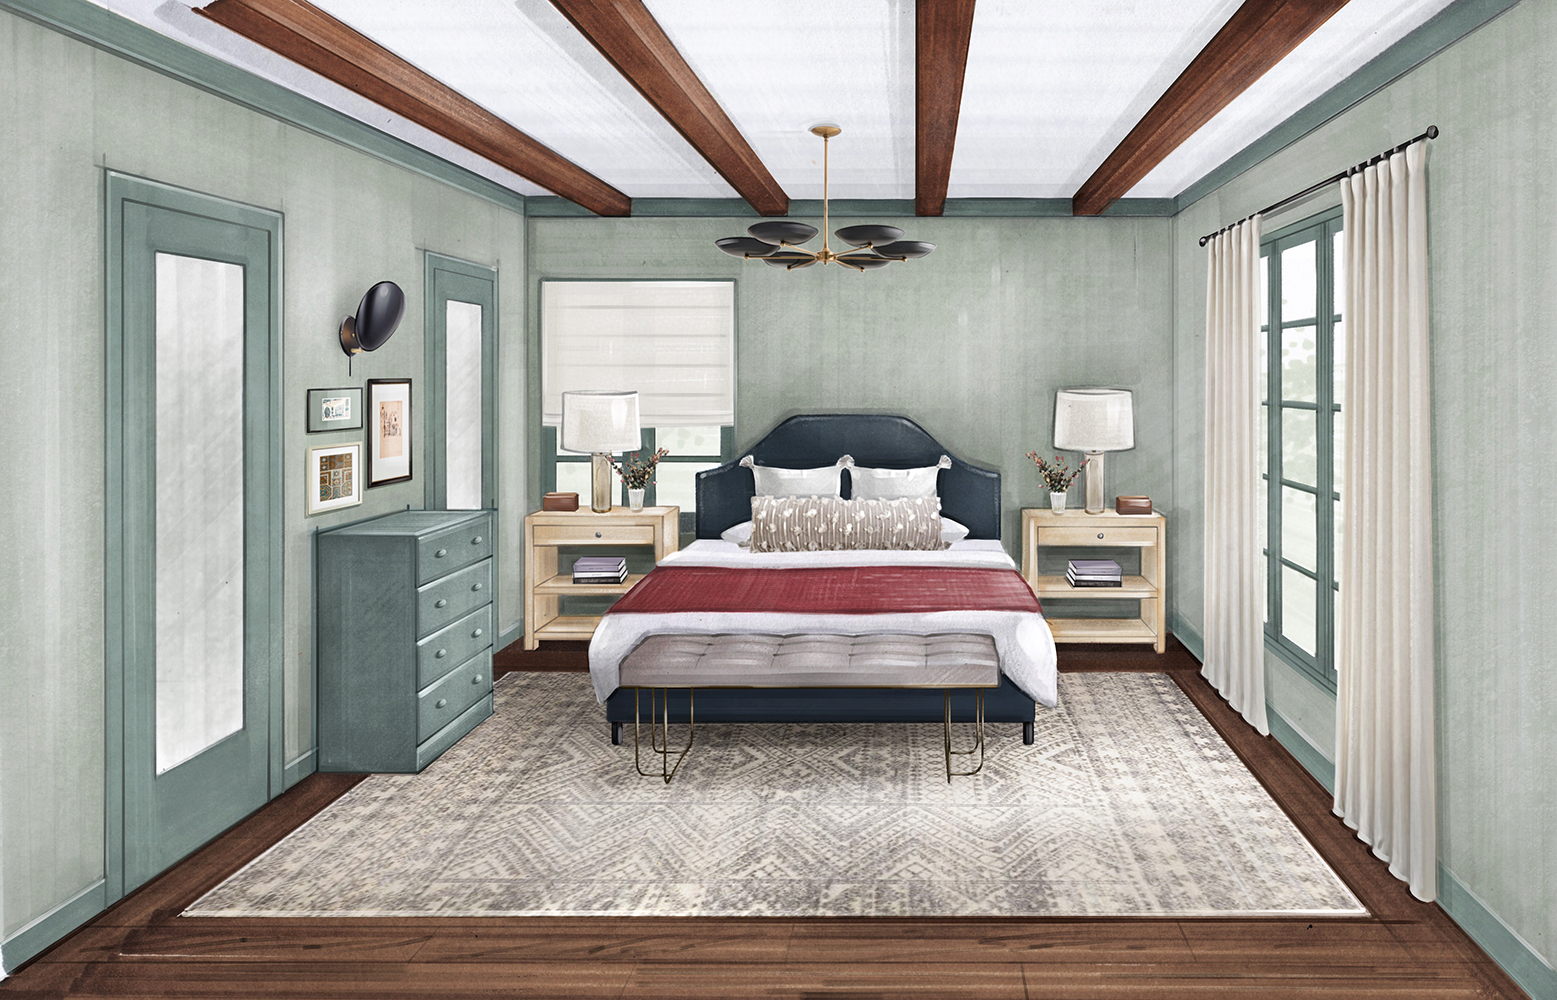 Bedroom Concept Rendering